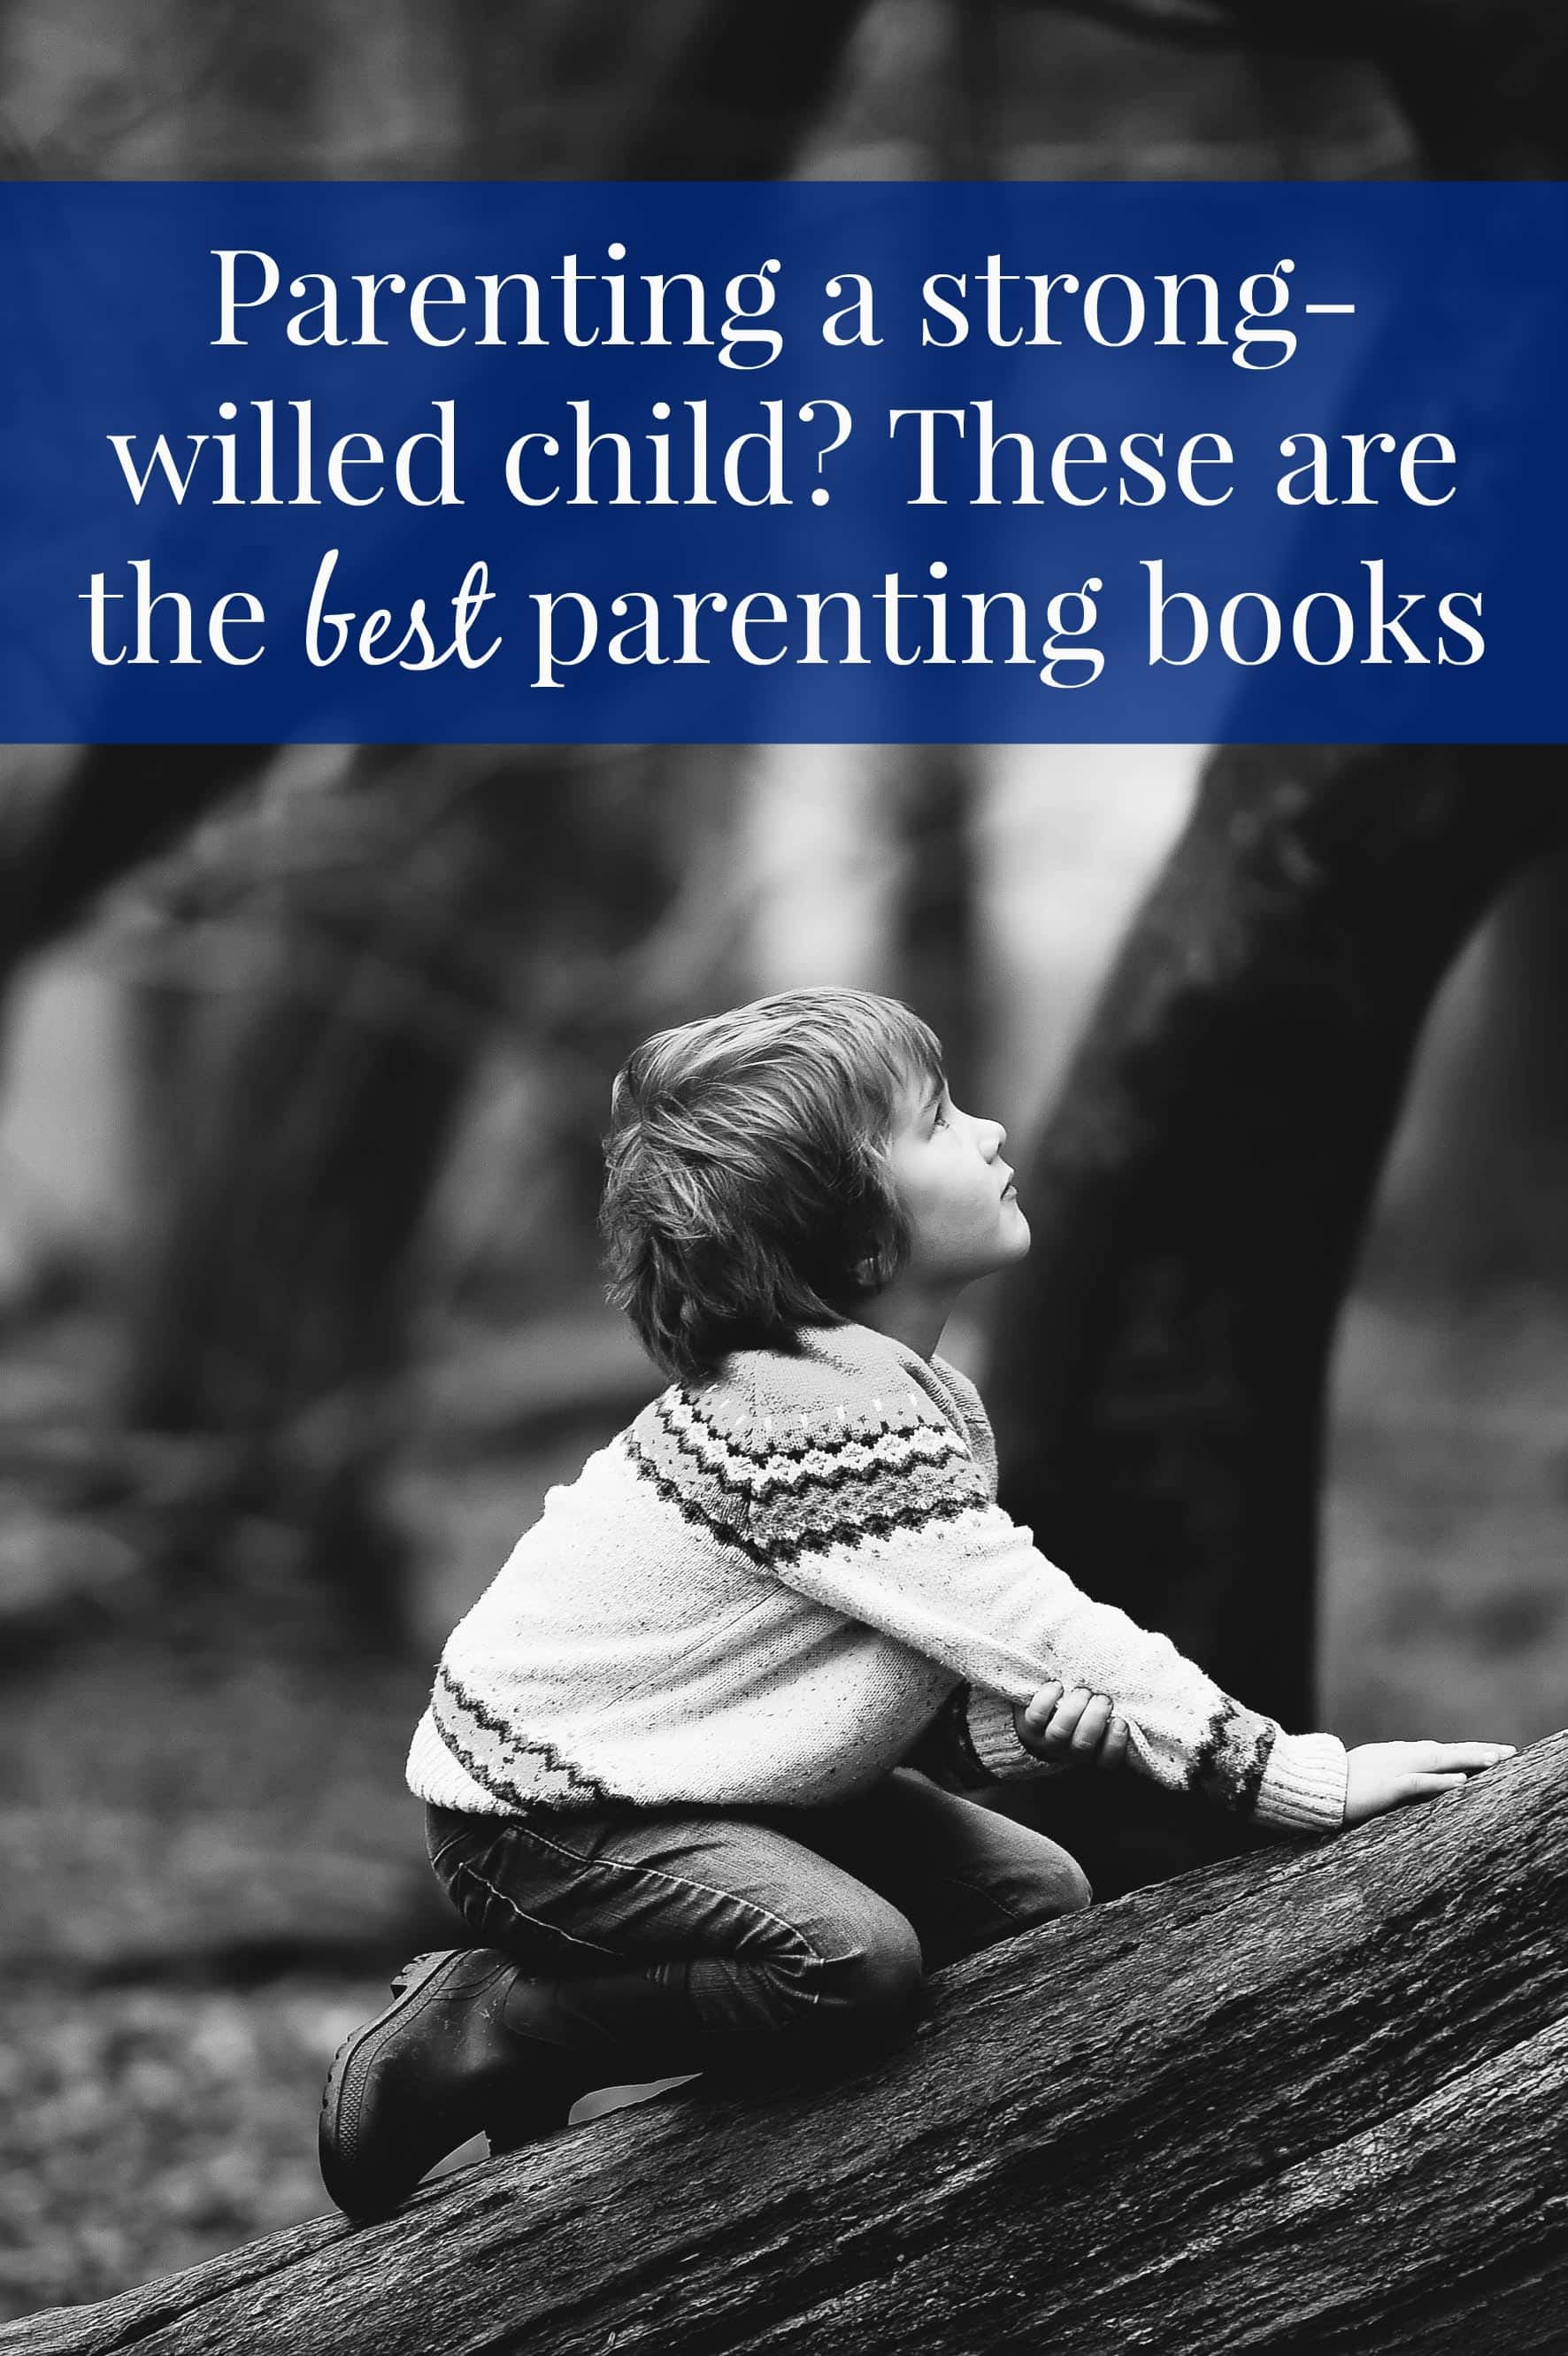 Because parenting a strong-willed child is so dynamic and challenging, parents need comprehensive ways to effectively parent. Articles with simple solutions aren't enough for such bright children that are prone to power struggles. Find the best parenting books for parenting strong-willed children while maintaining their spirit. #parenting #strongwilledchild #parentingtips #parentinghacks #parentingbooks #positiveparenting #positivediscipline #momlife